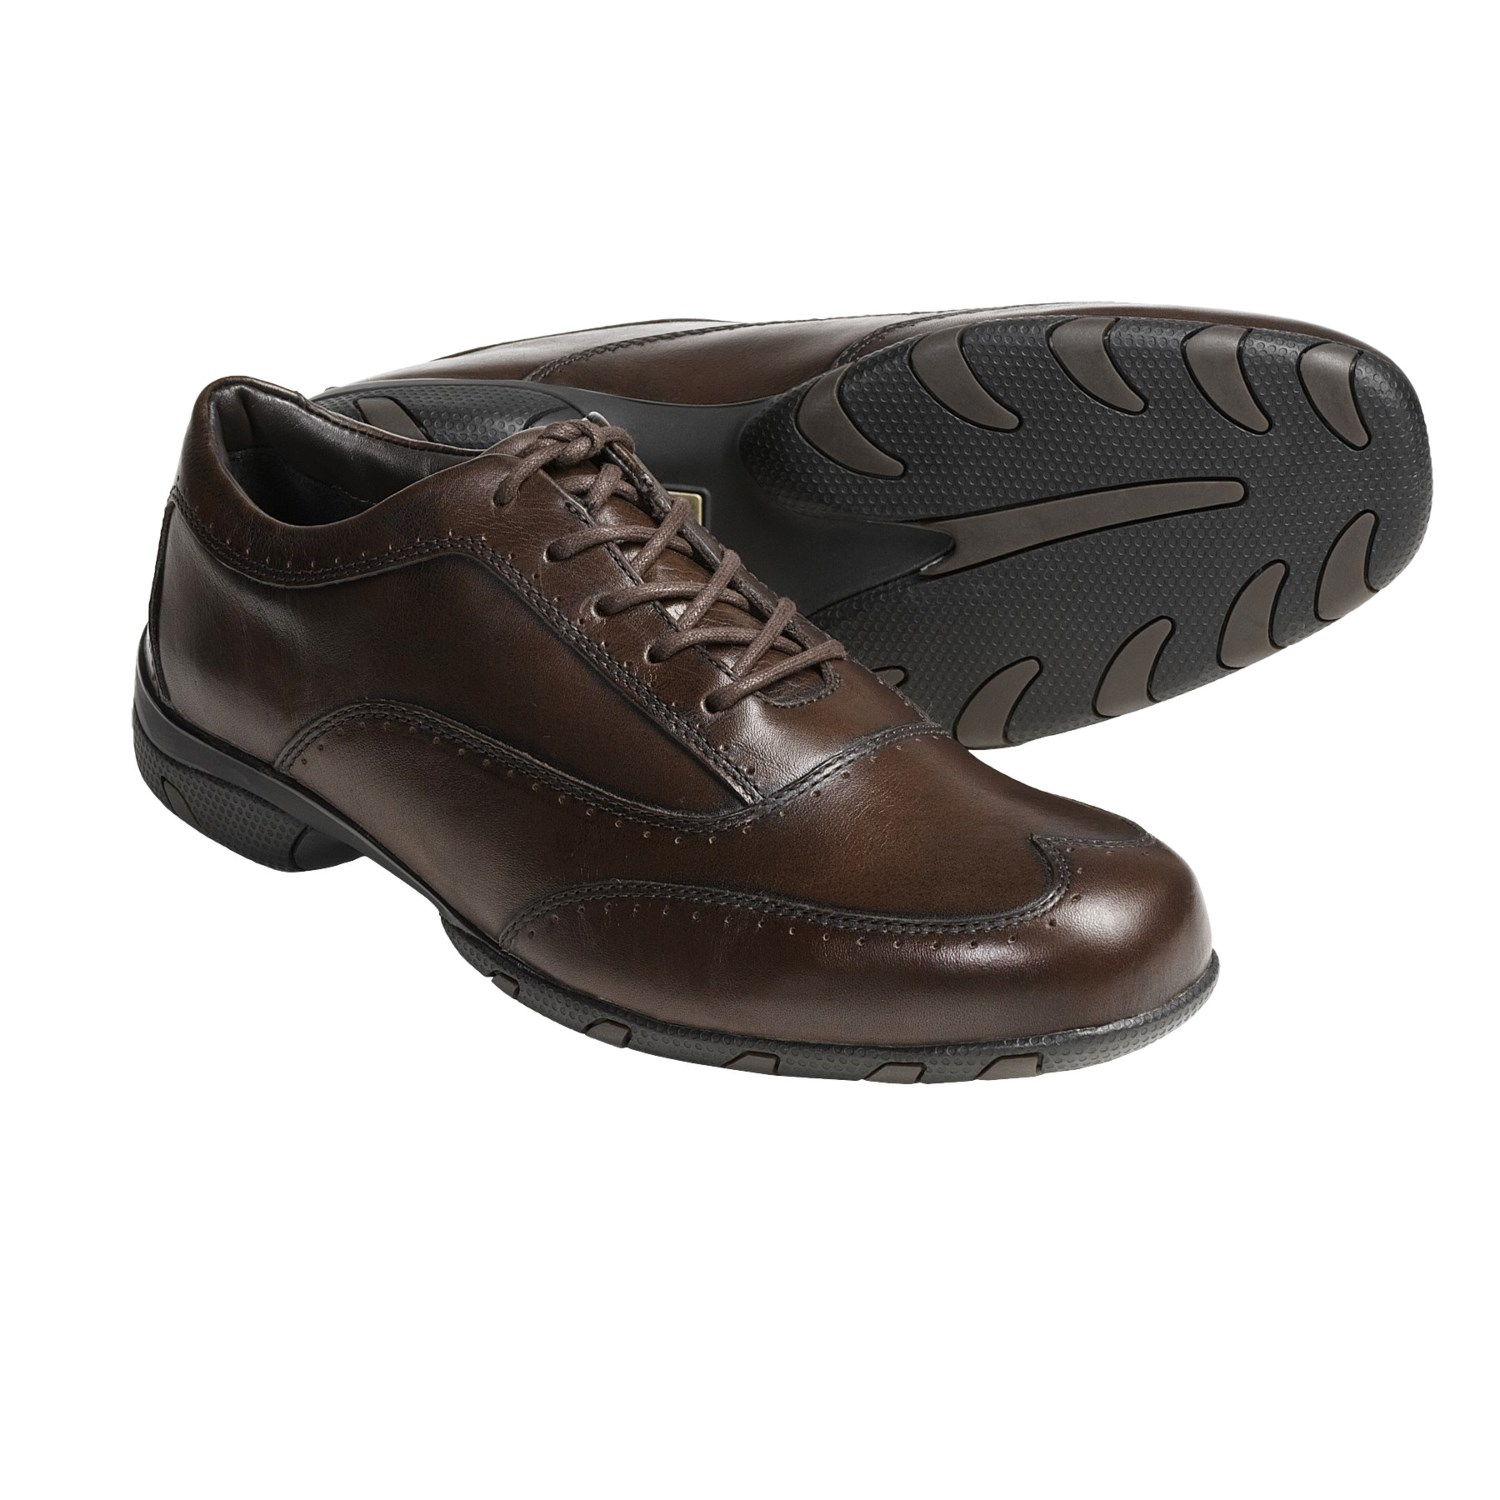 Player Wingtip Oxford Shoes - Supple Calf Leather (For Men) in Brown